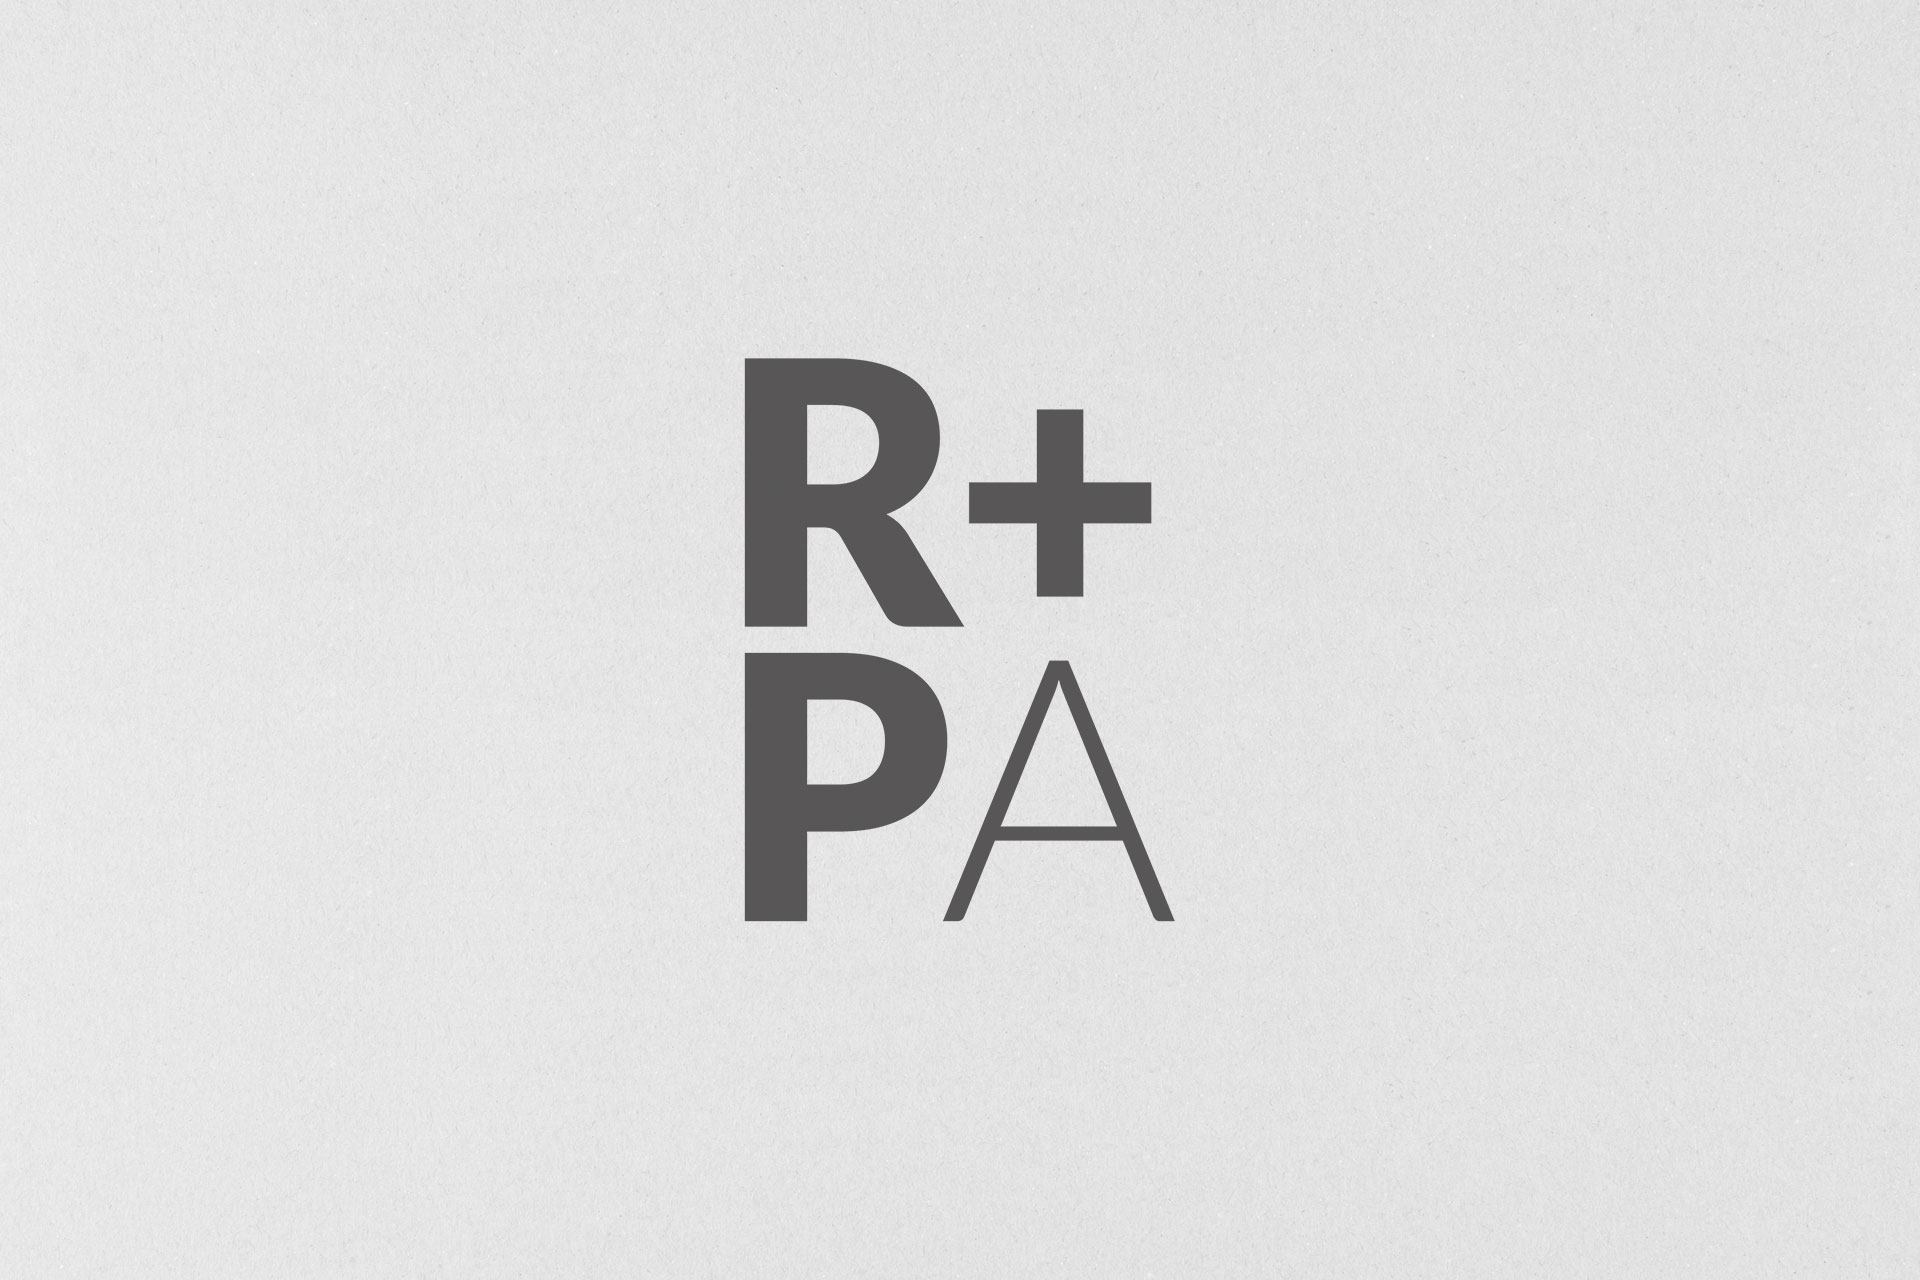 rpa-corporate-design logo design